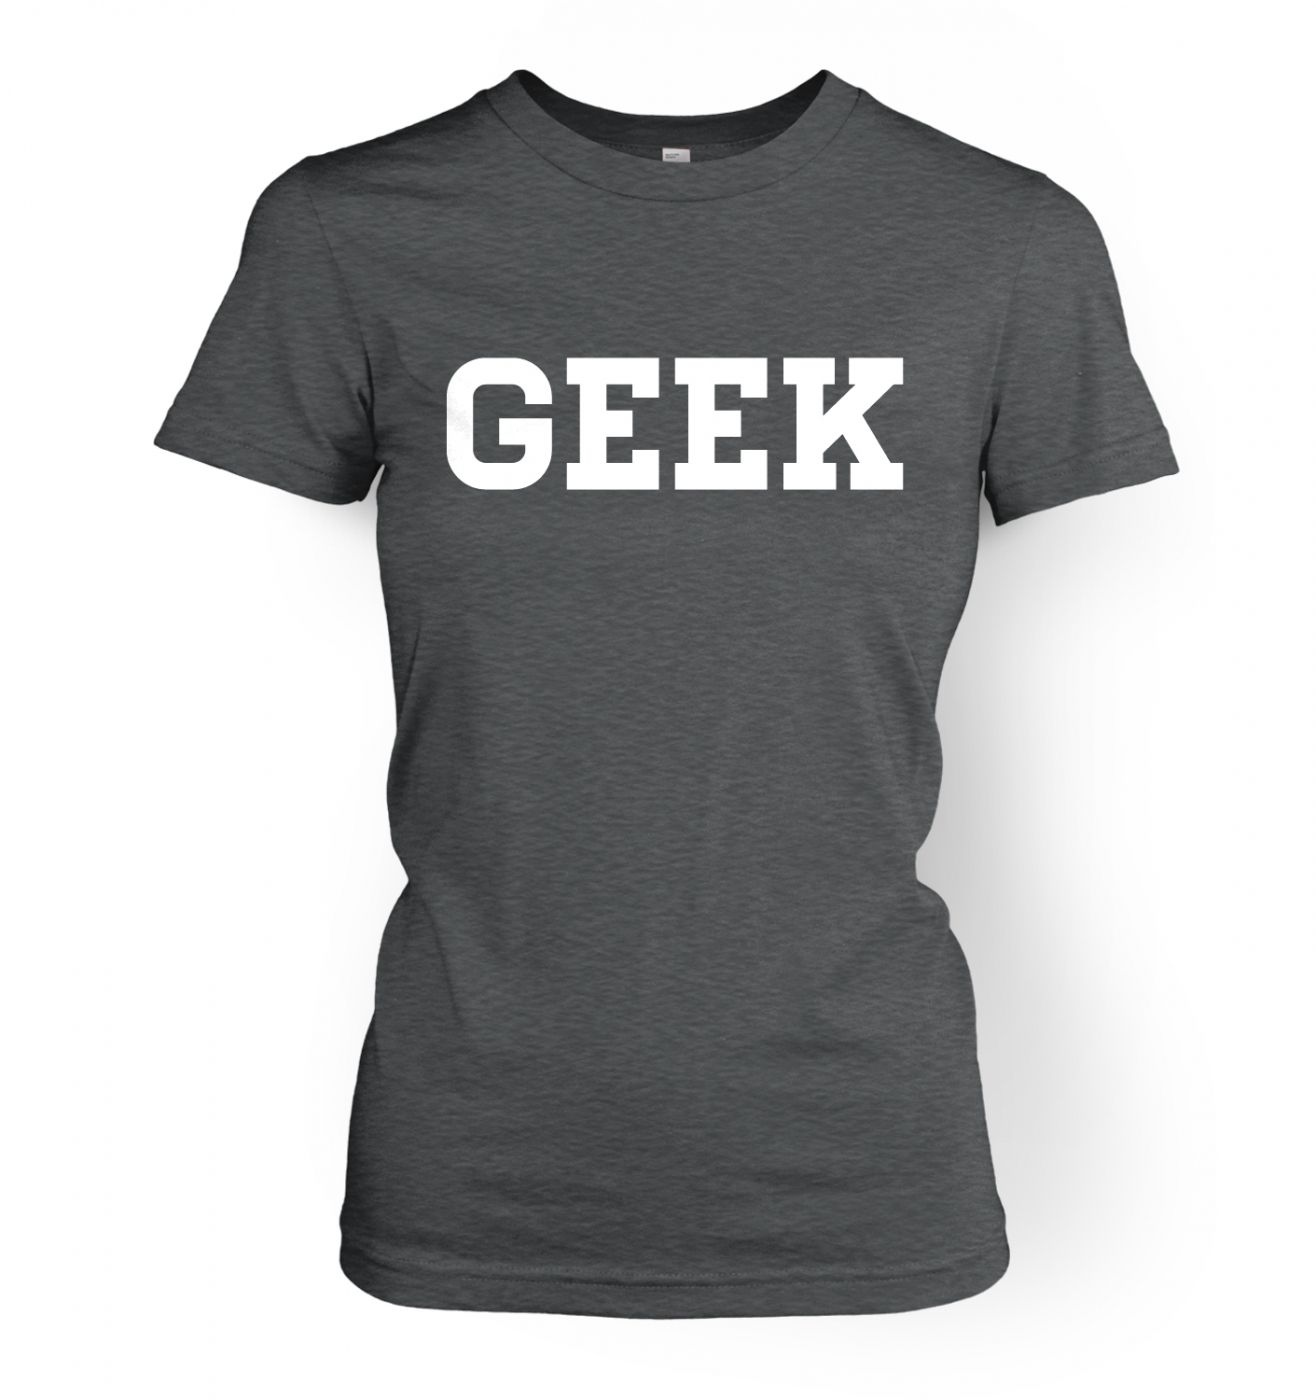 Geek women's fitted t-shirt